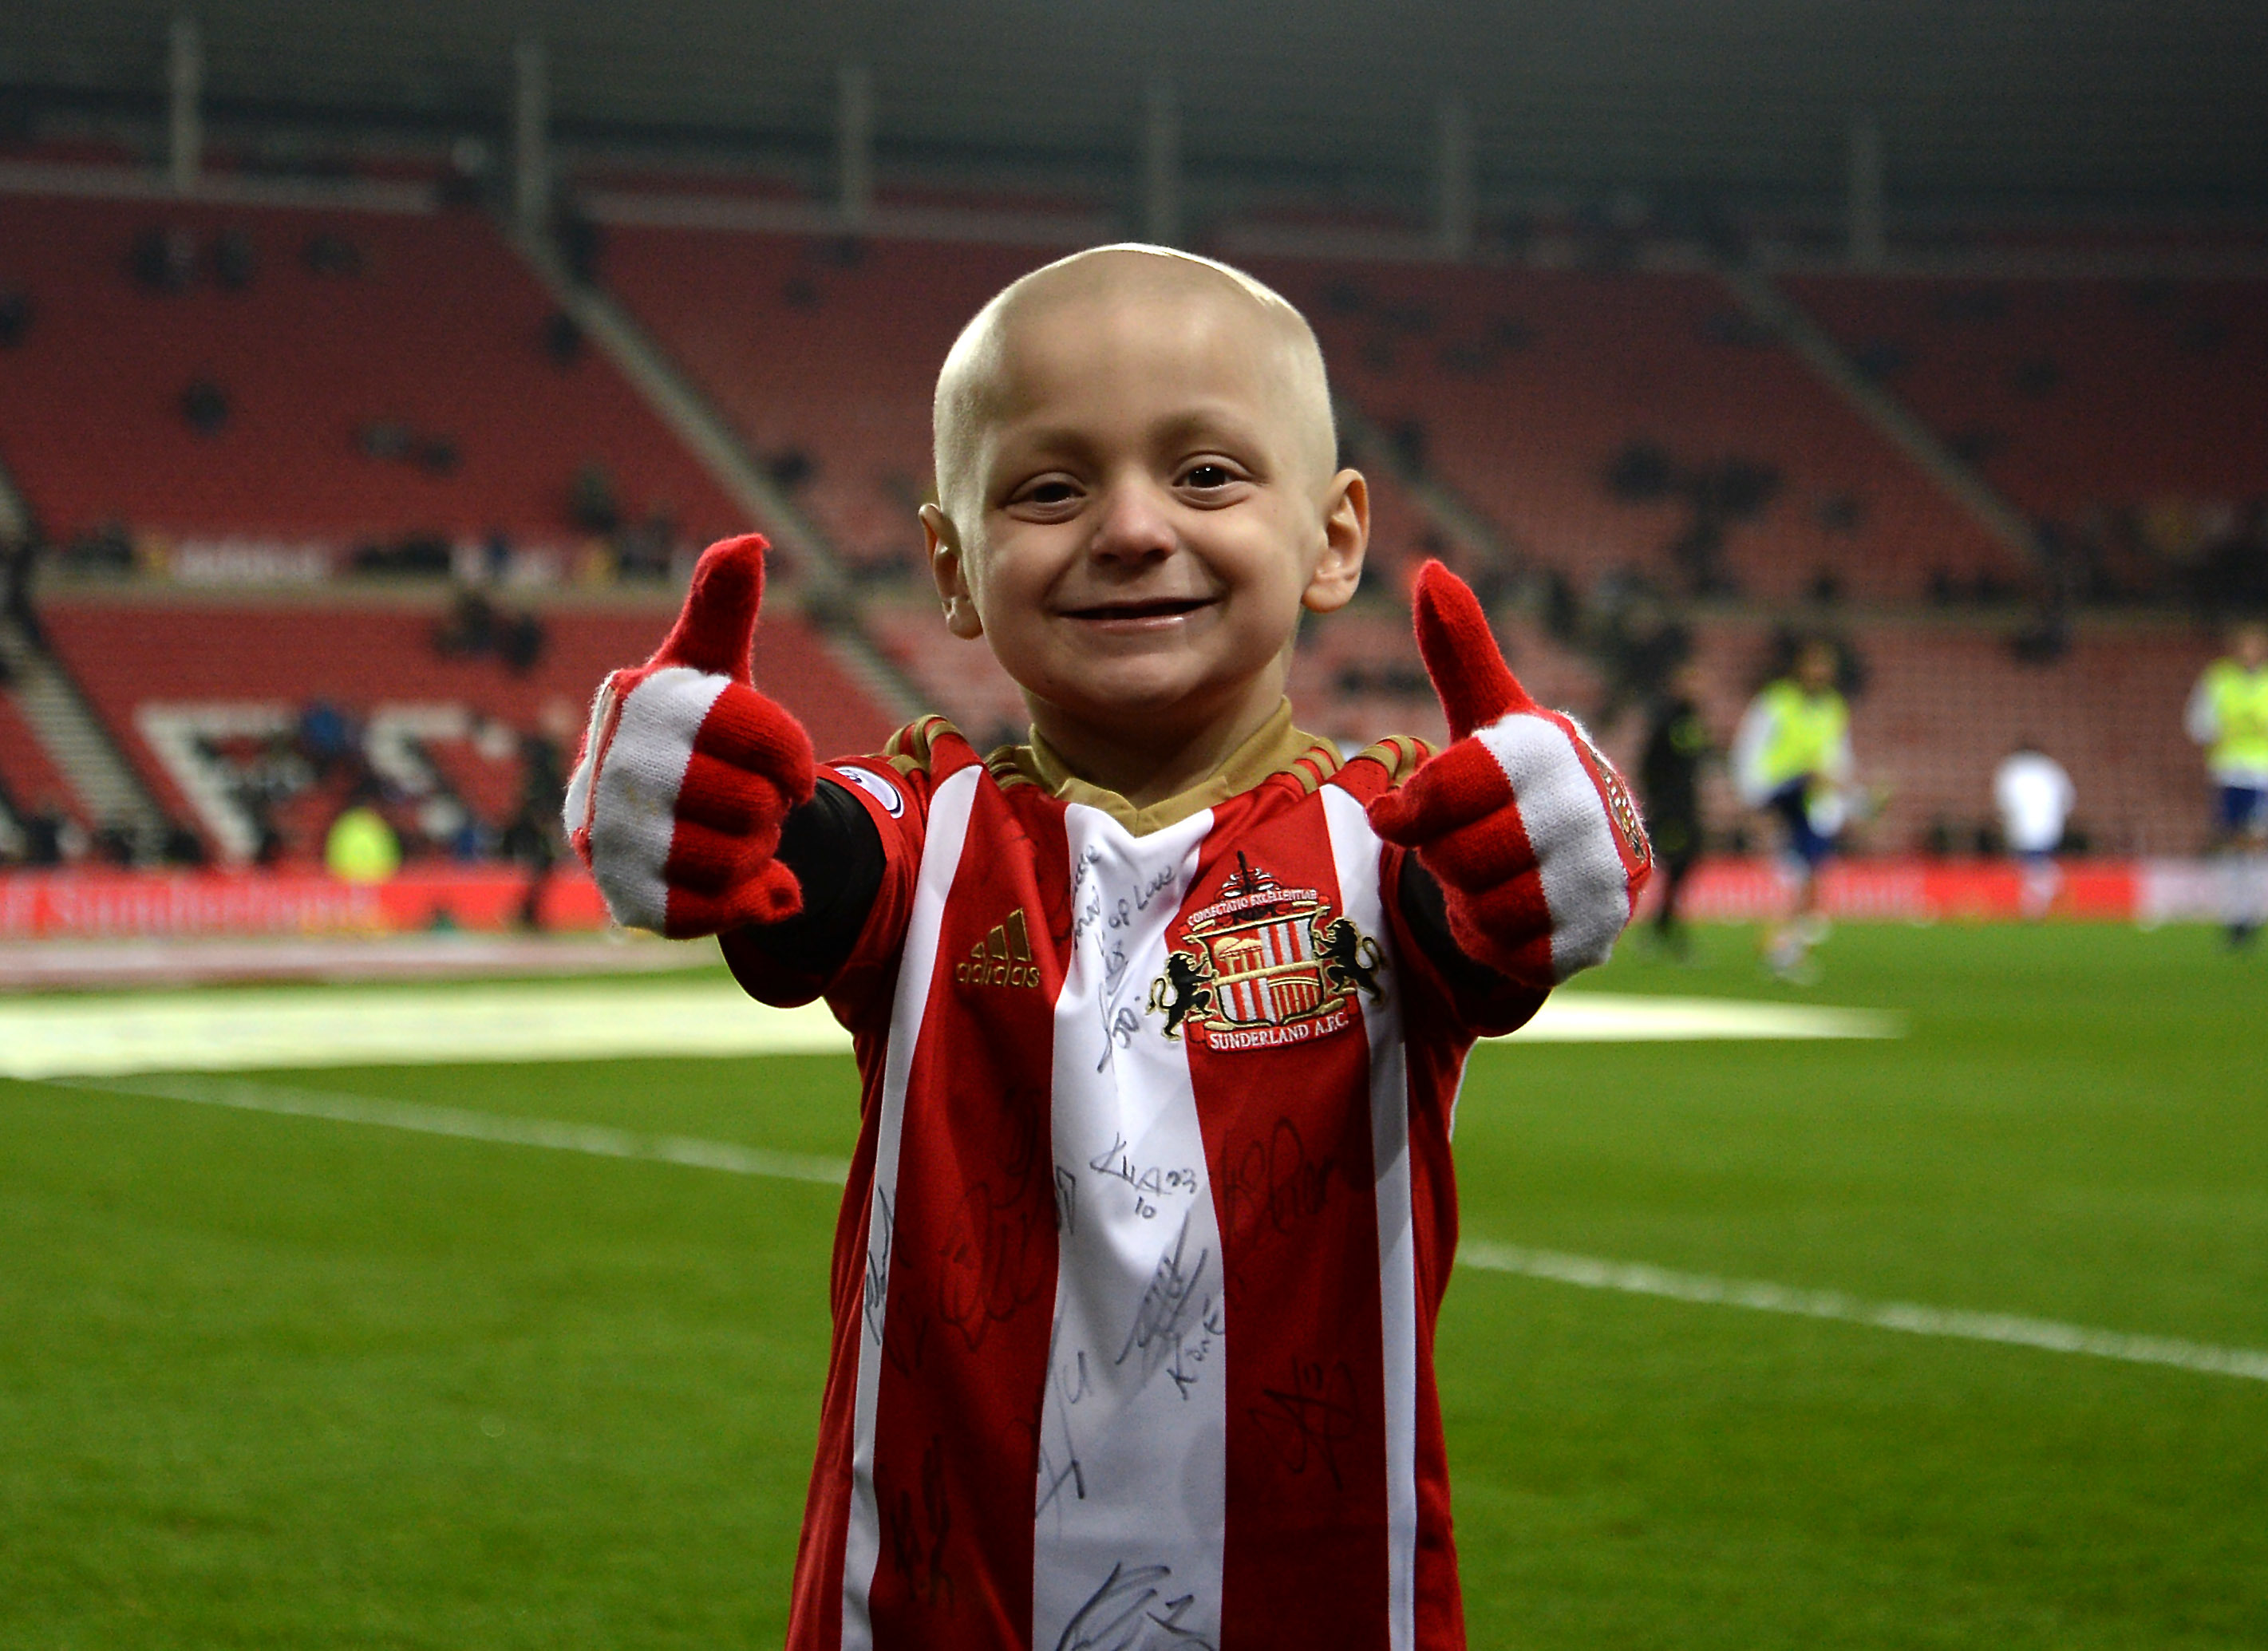 Bradley touched the lives of thousands of people during his life. Credit: PA Images